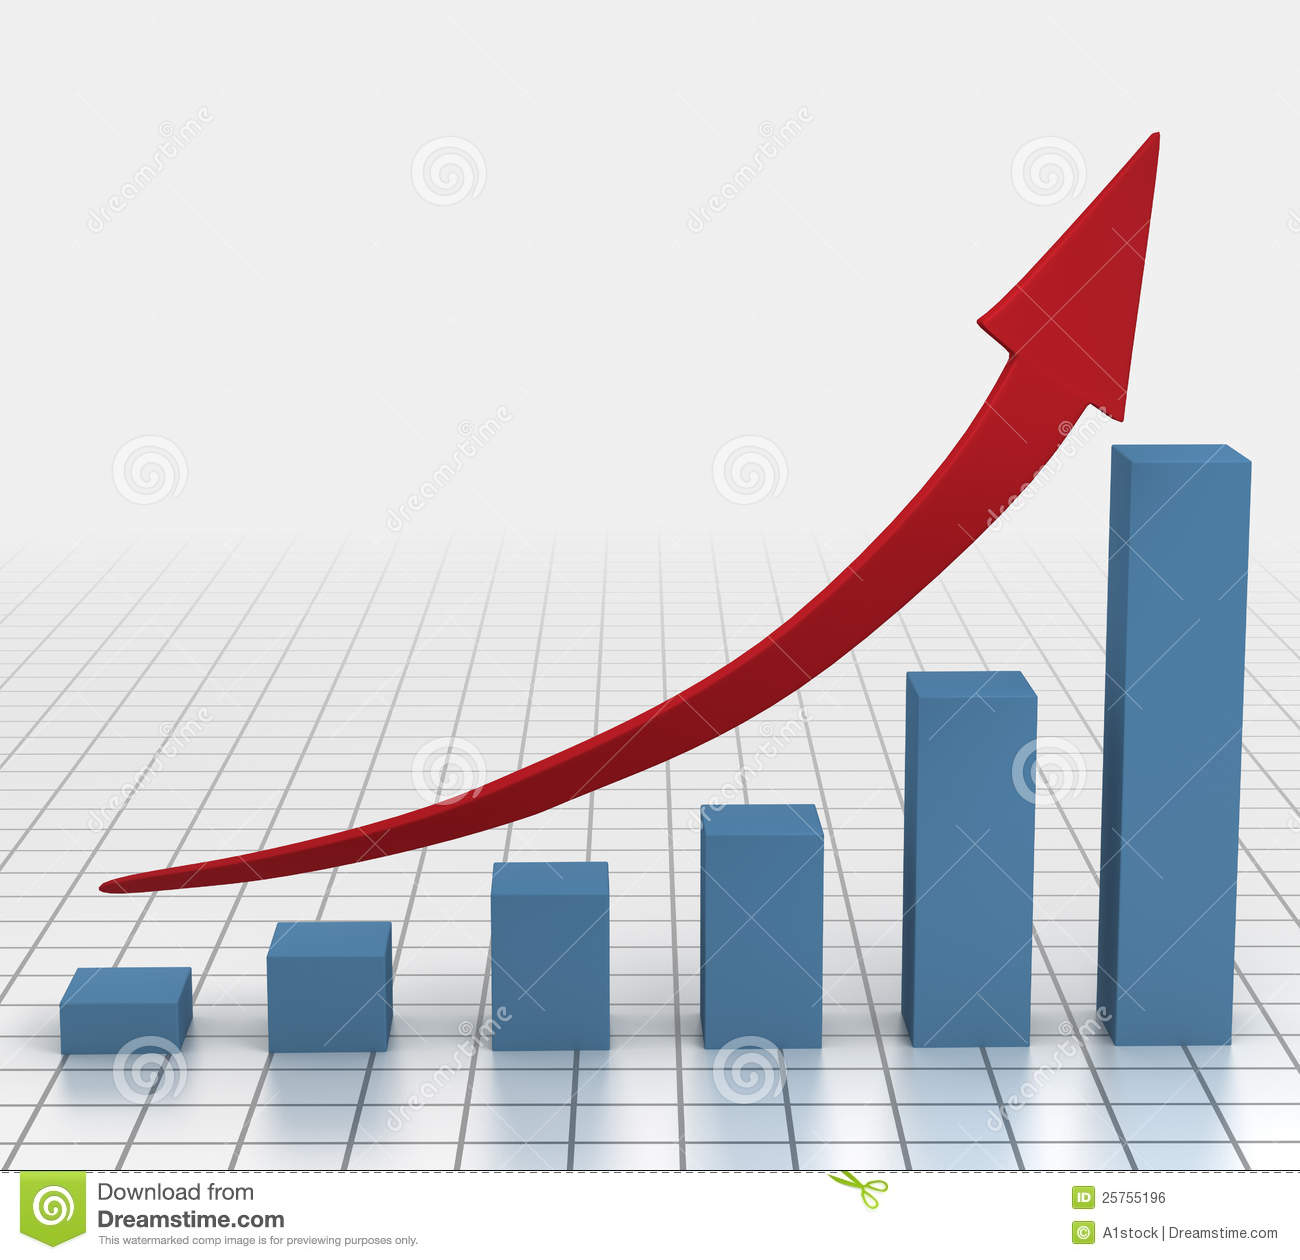 Business growth chart stock illustration illustration of forecast business growth chart nvjuhfo Gallery